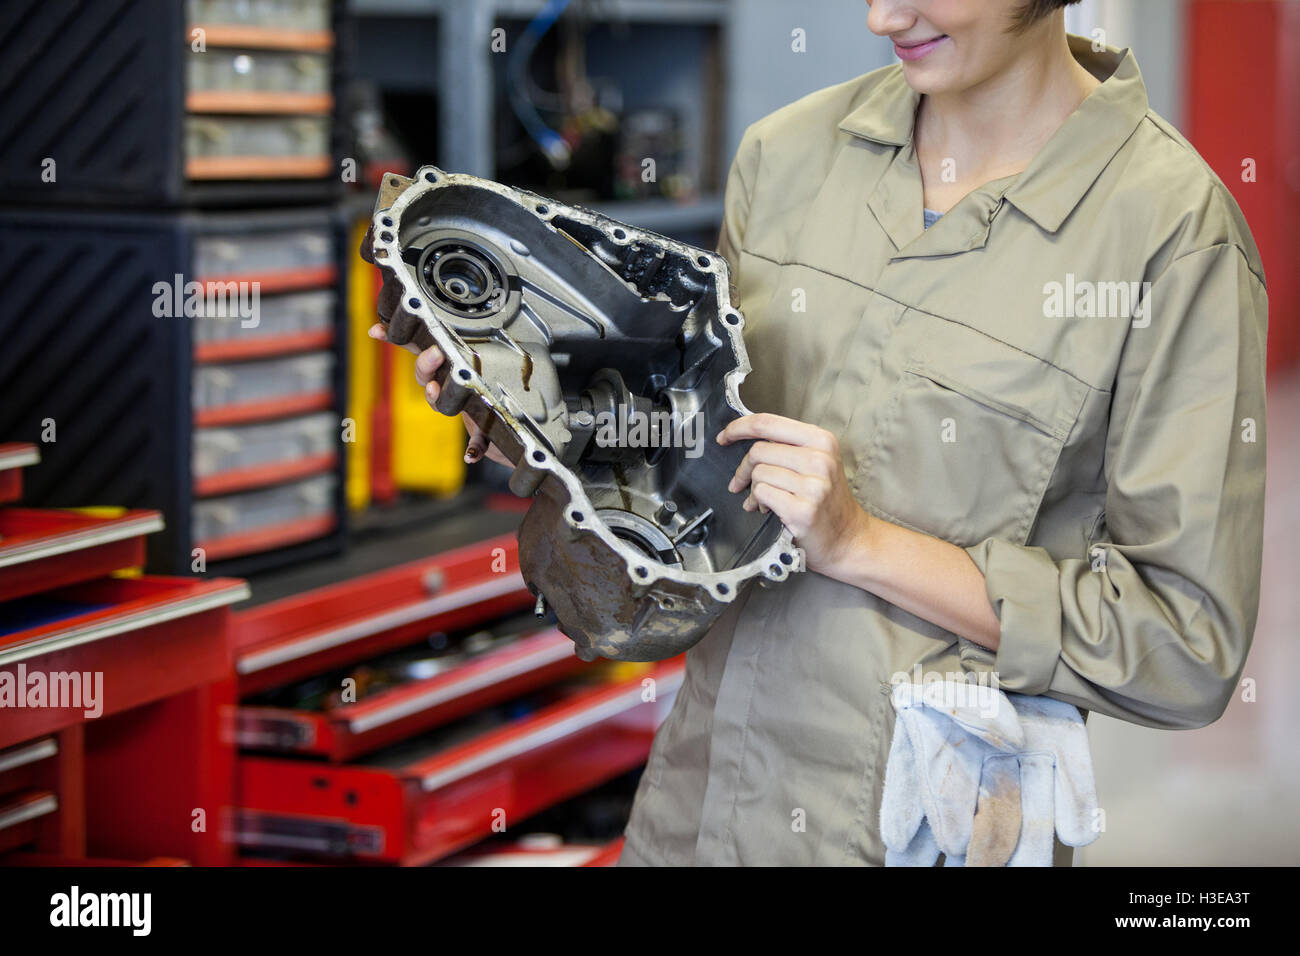 Female mechanic holding spare parts - Stock Image